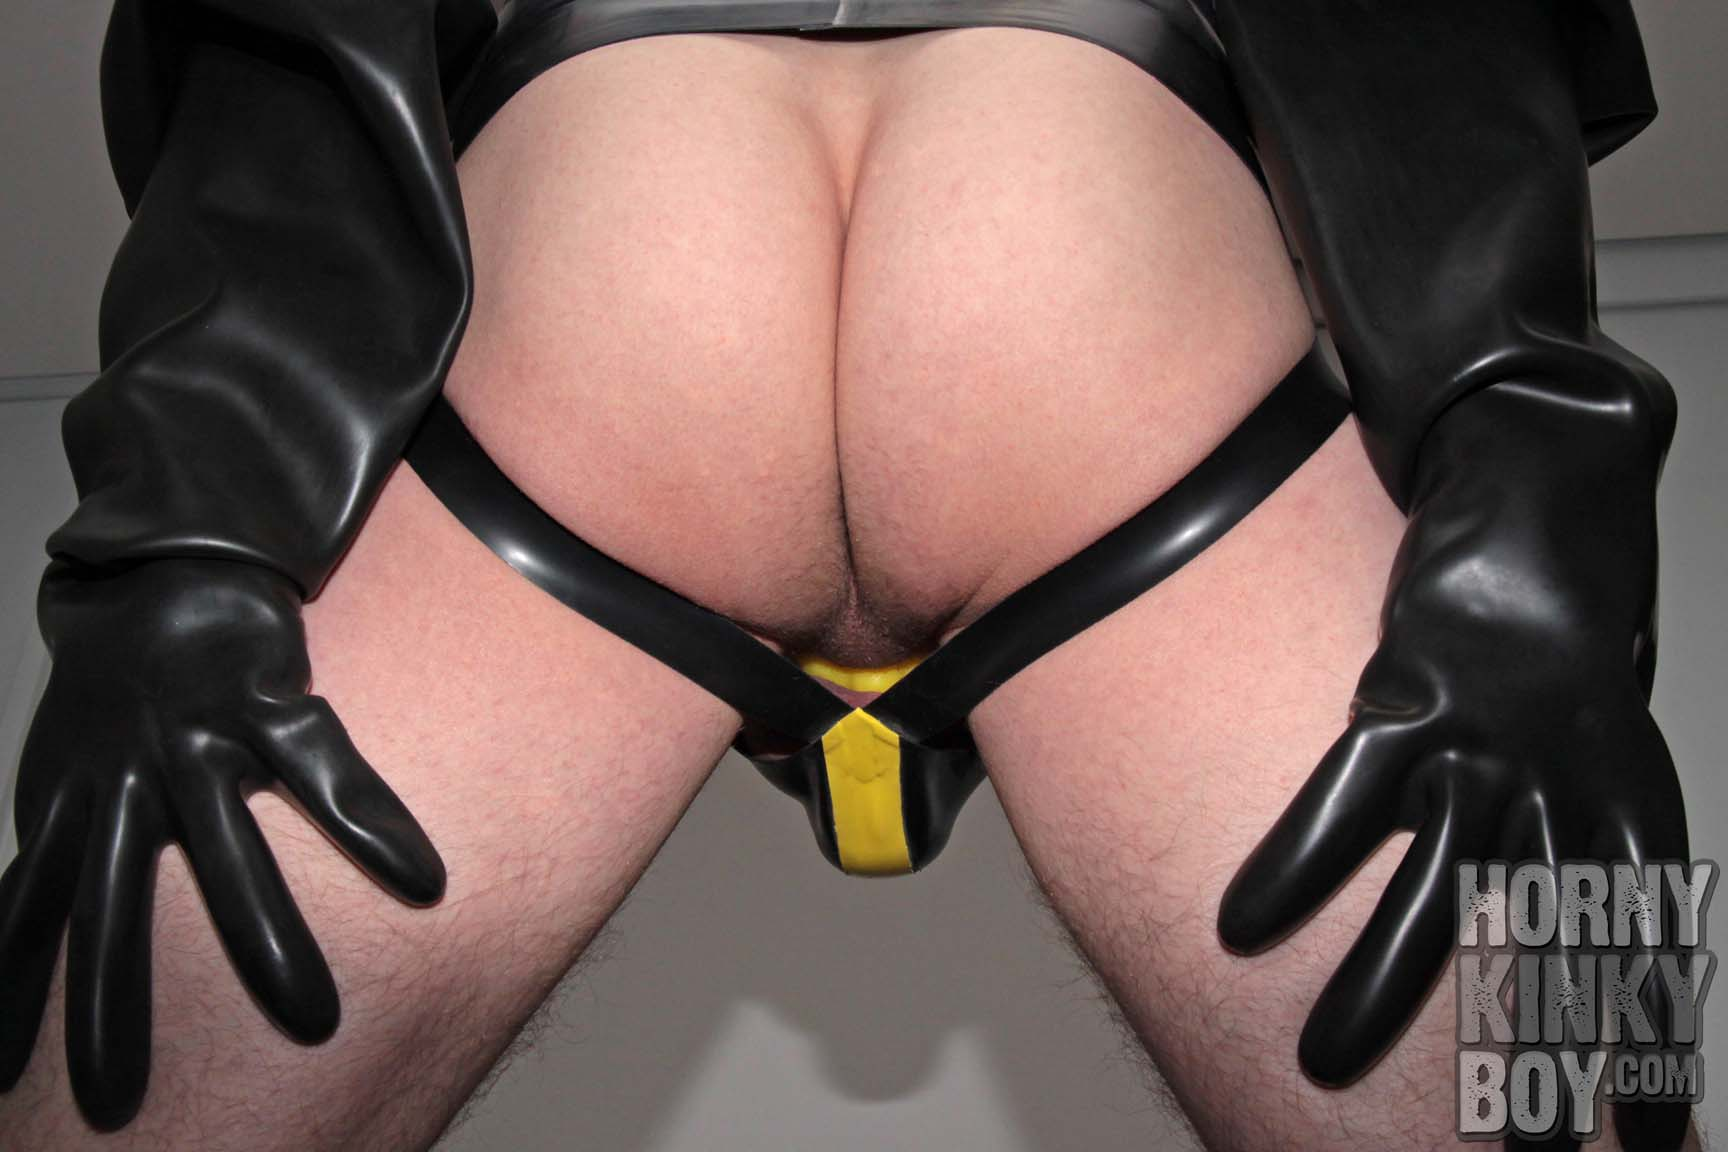 Sweet Rubber Boy II